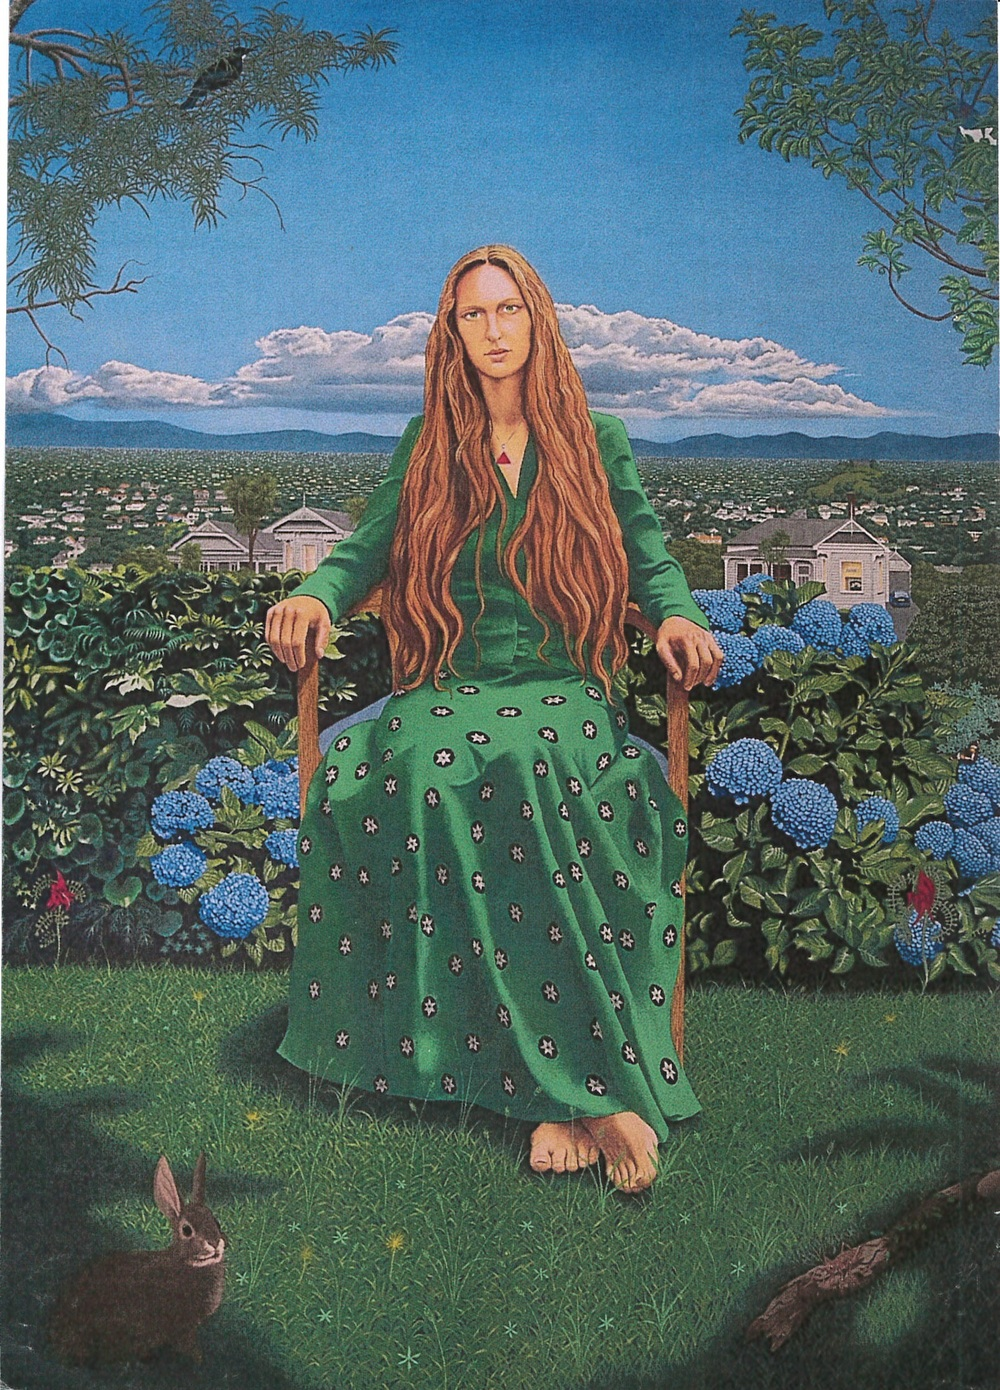 The Empress of Auckland (Charlotte Drinkwater), by Hugh Major, finalist in the Adam Portraiture Award 2016.